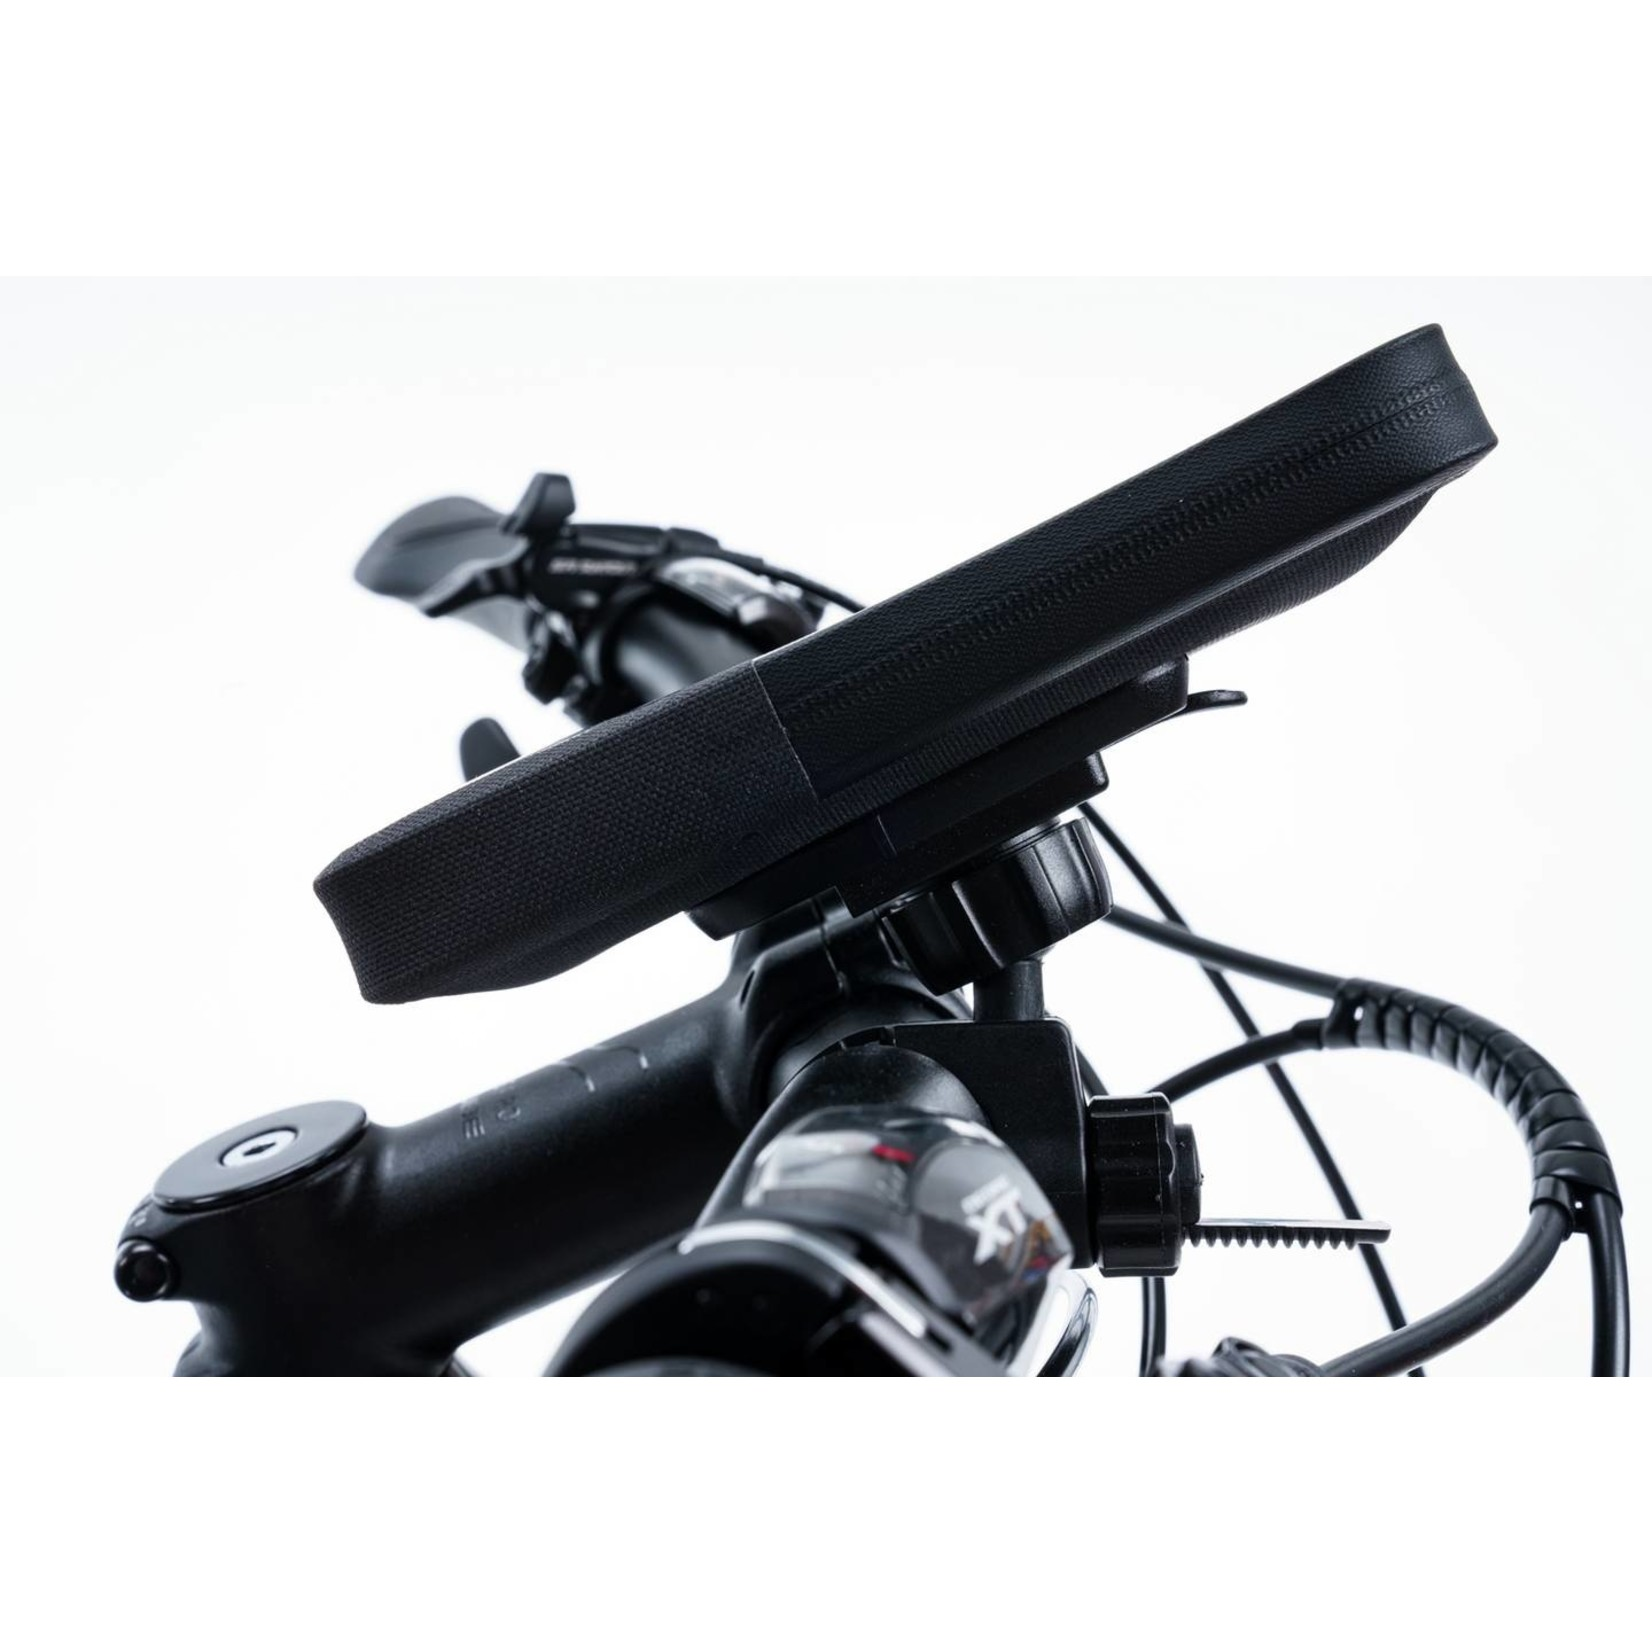 RFR RFR Mobile Phone Mount PRO MAX